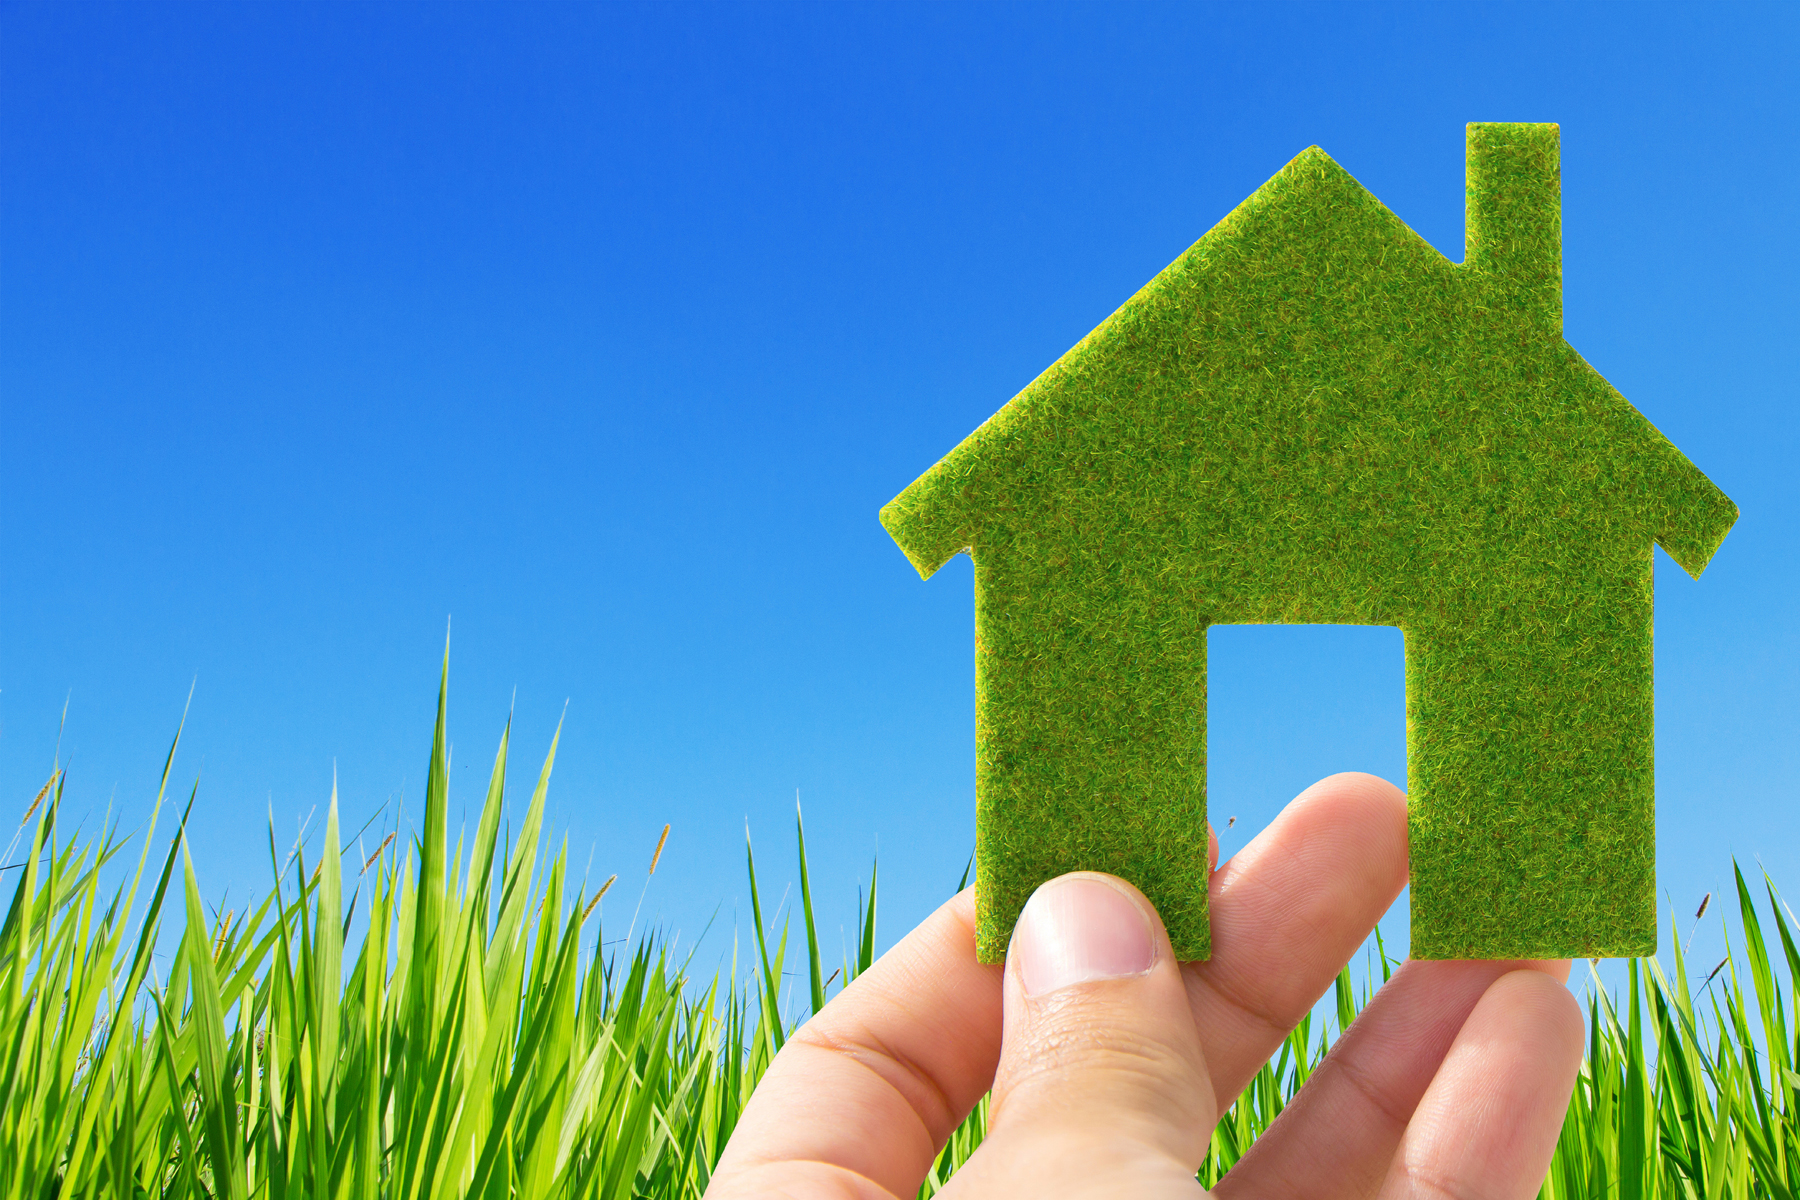 Tips to green your home